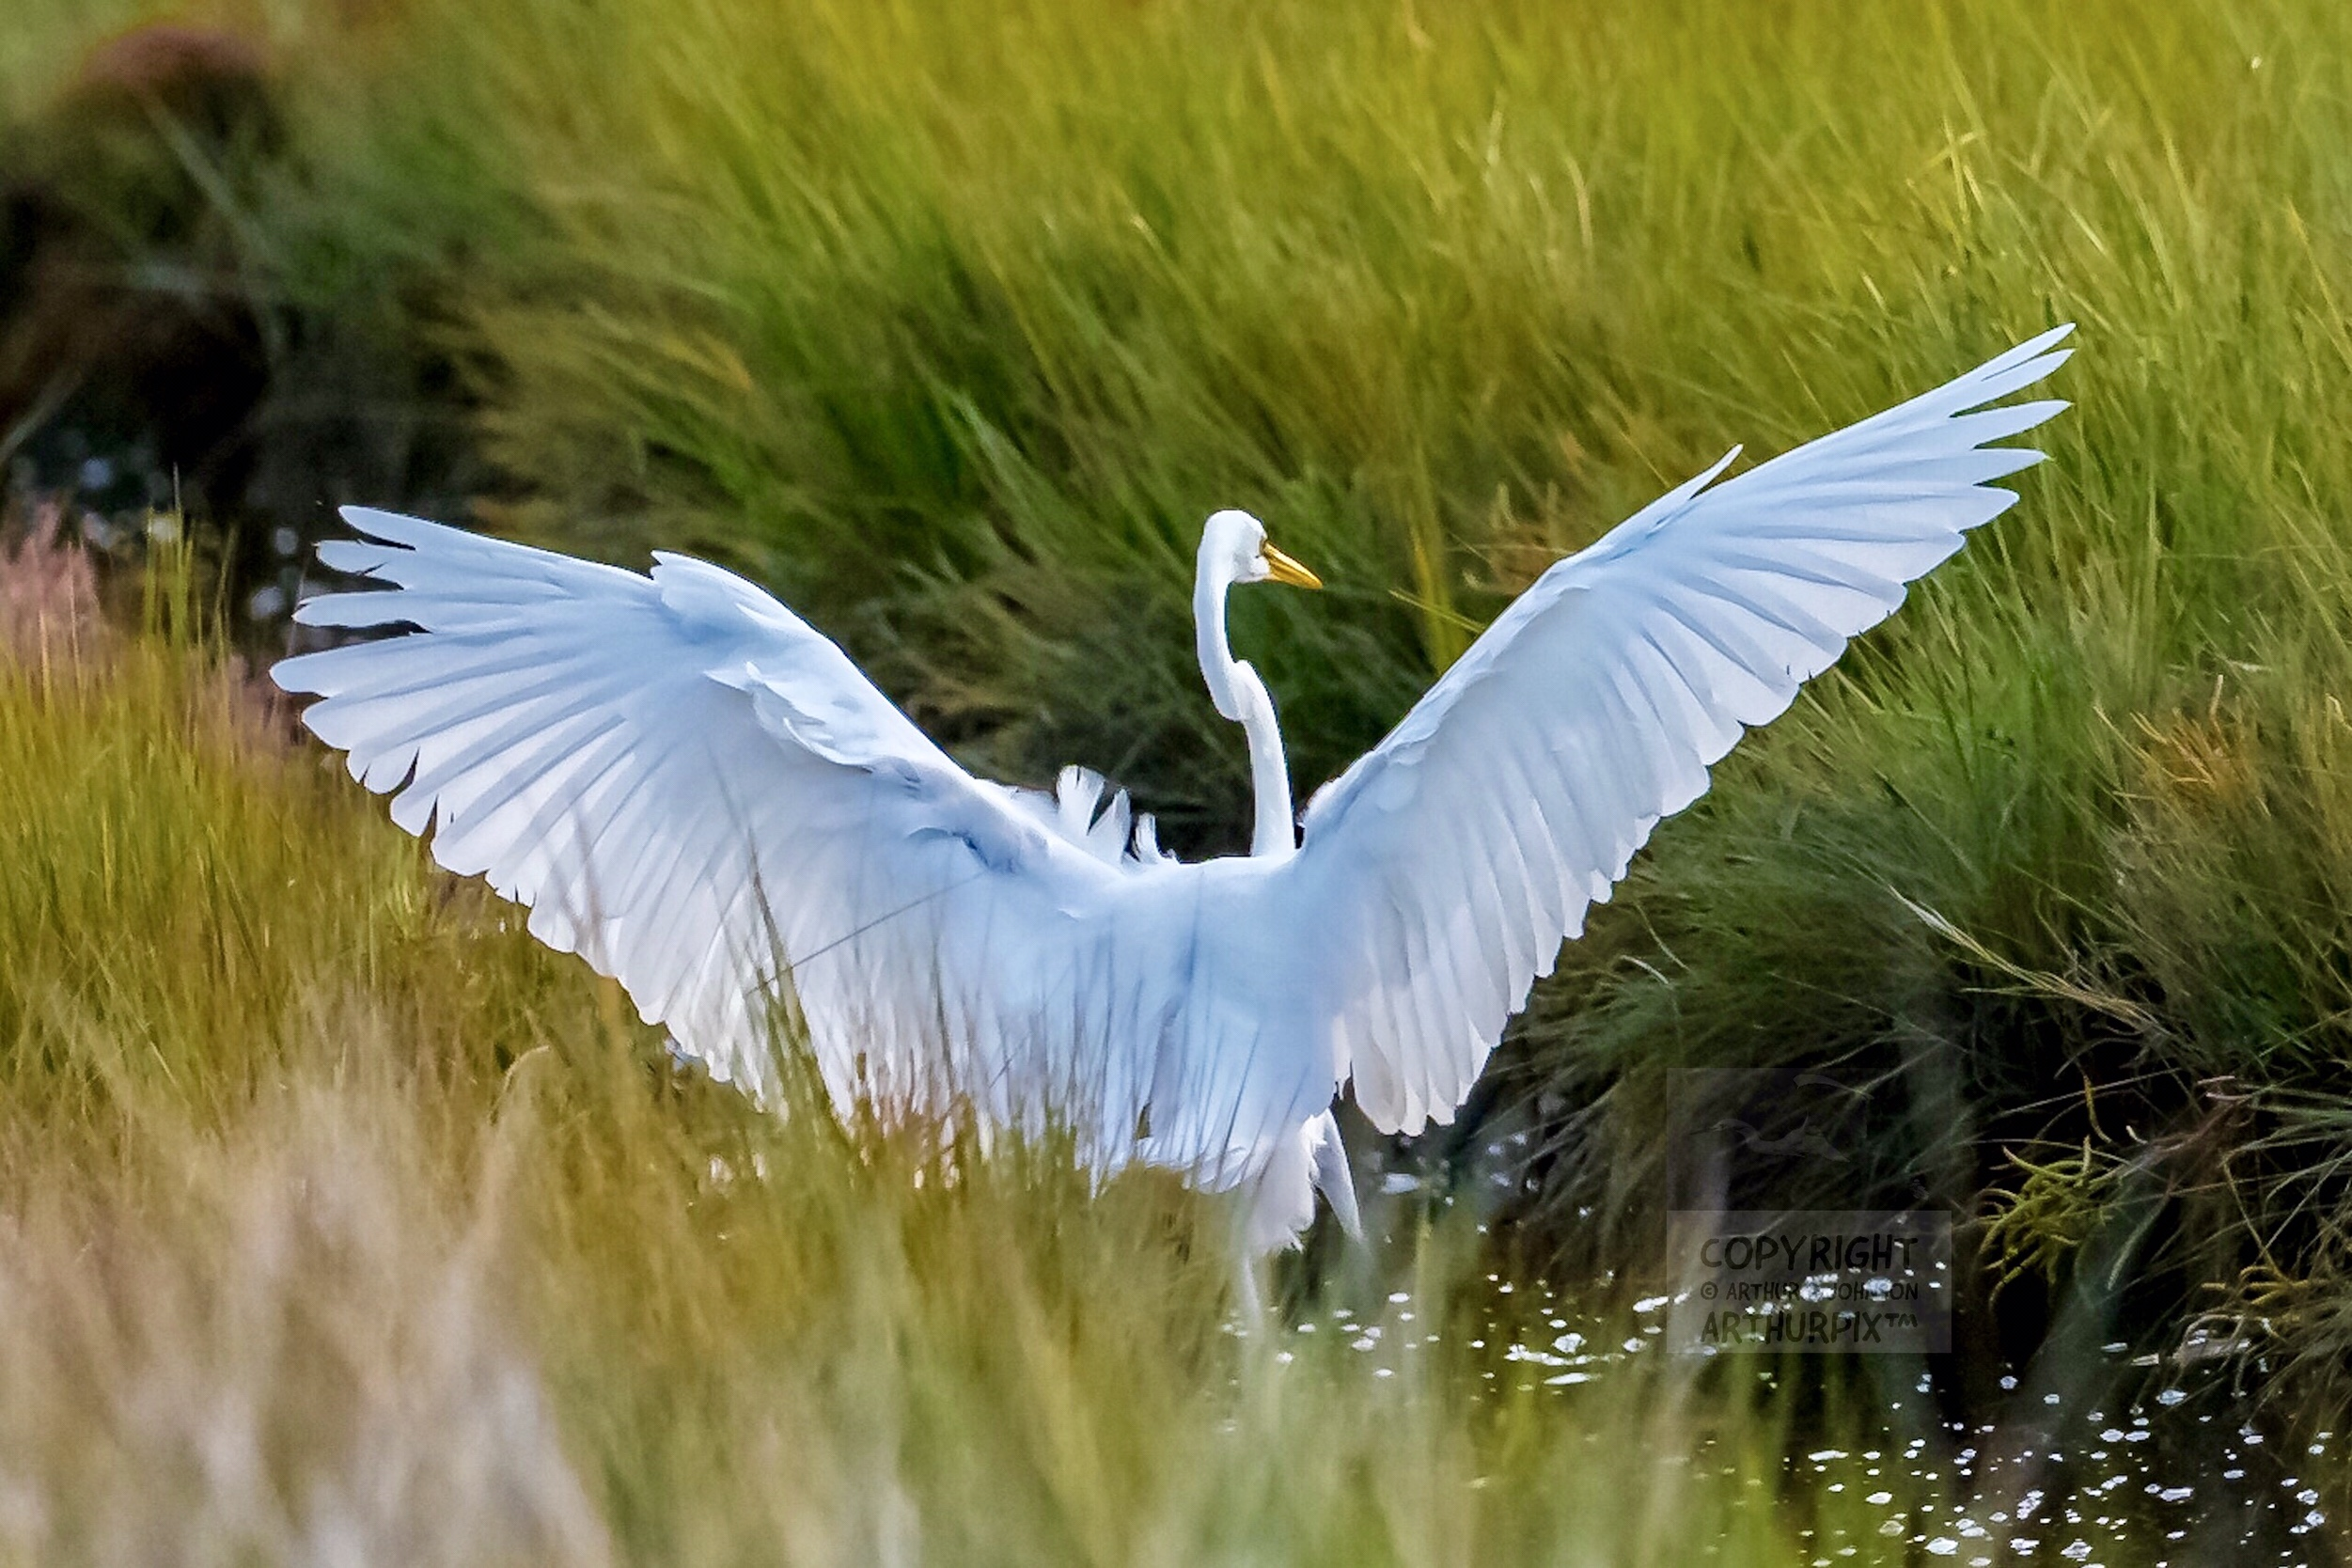 Female Great Egret, Wings Extended, Taking Flight